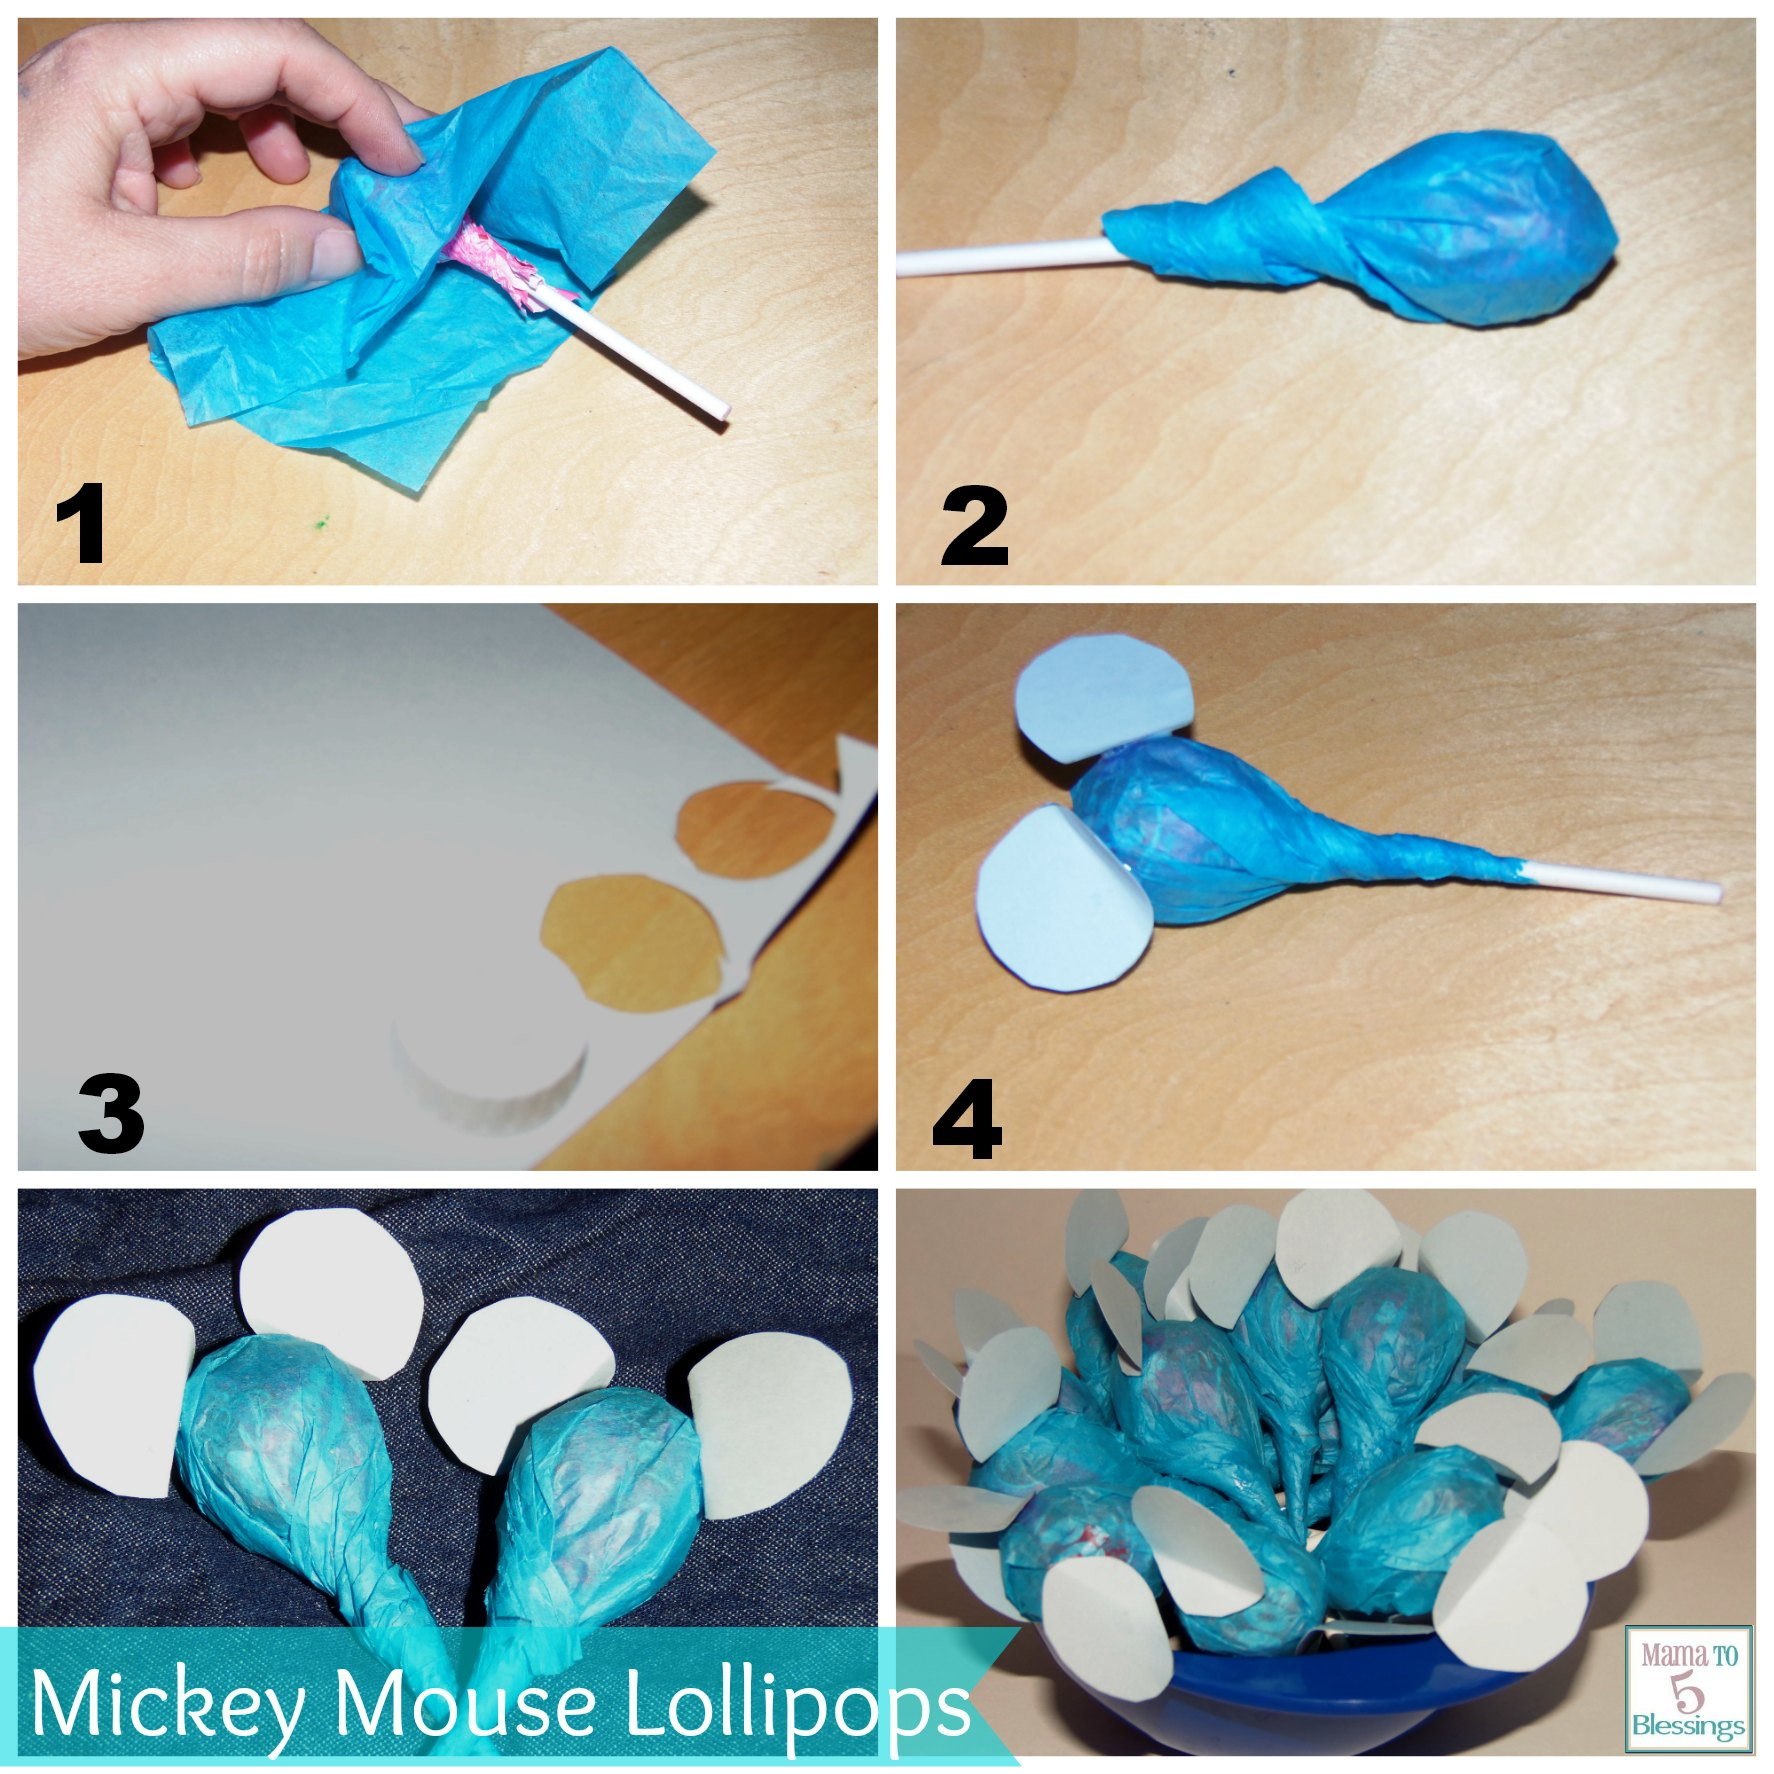 mickey mouse lollipop directions